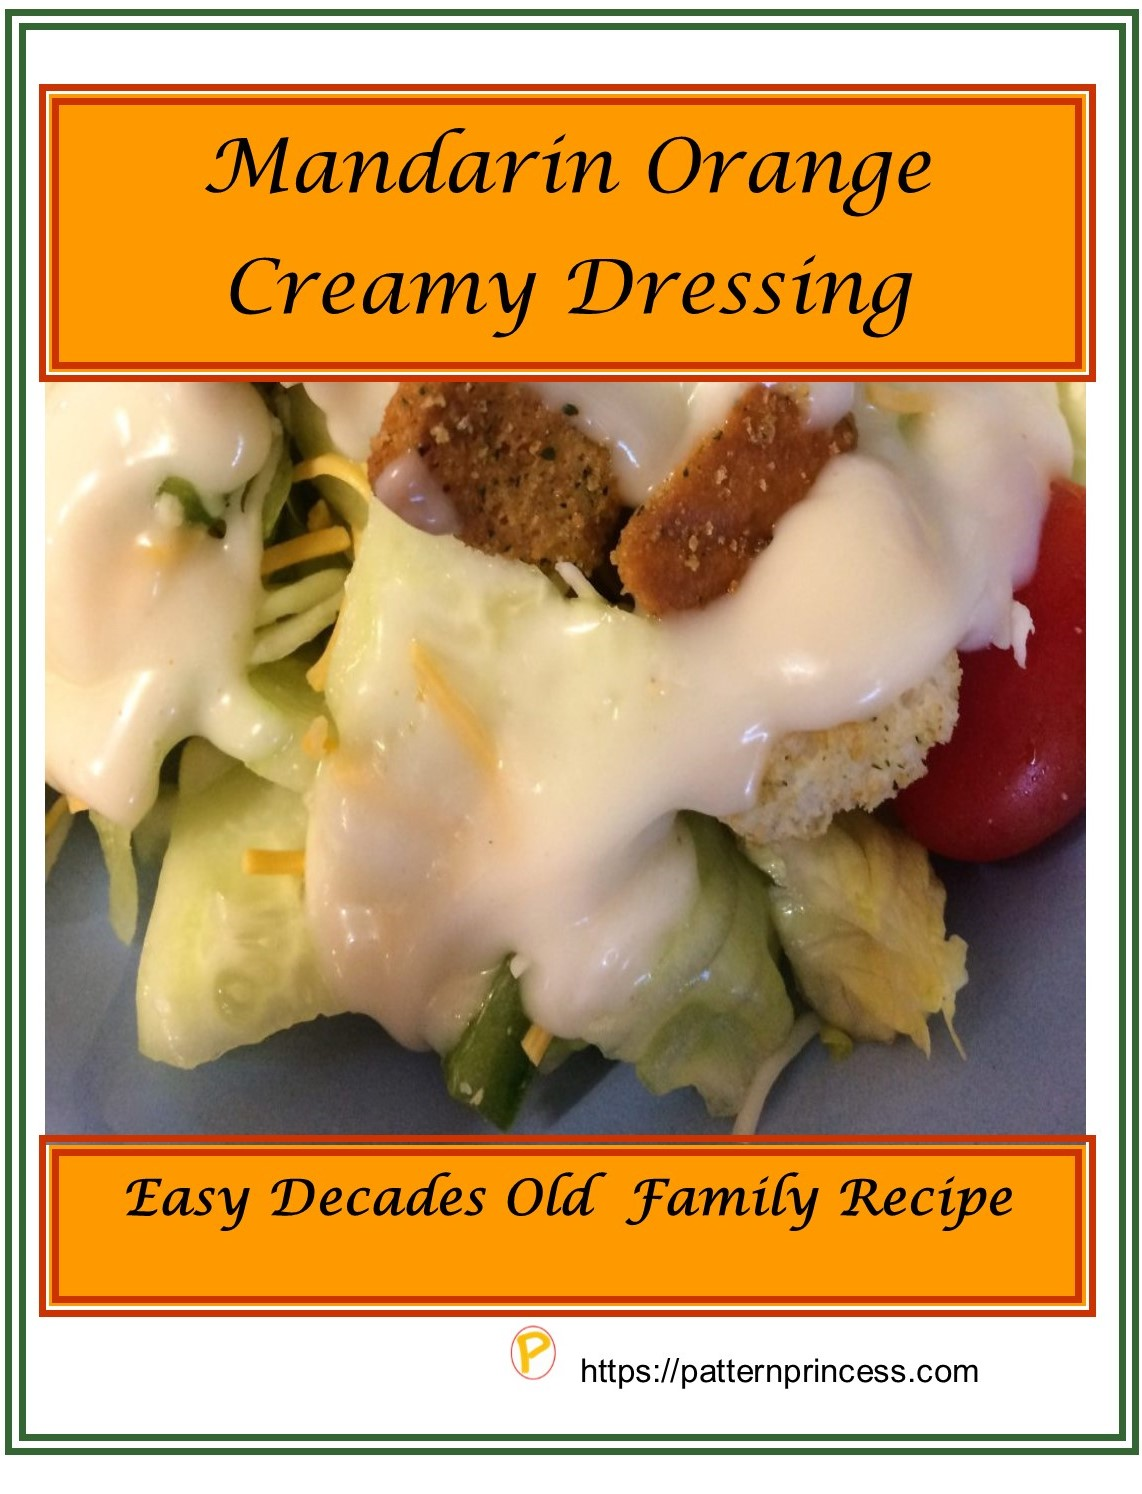 Mandarin Orange Creamy Dressing